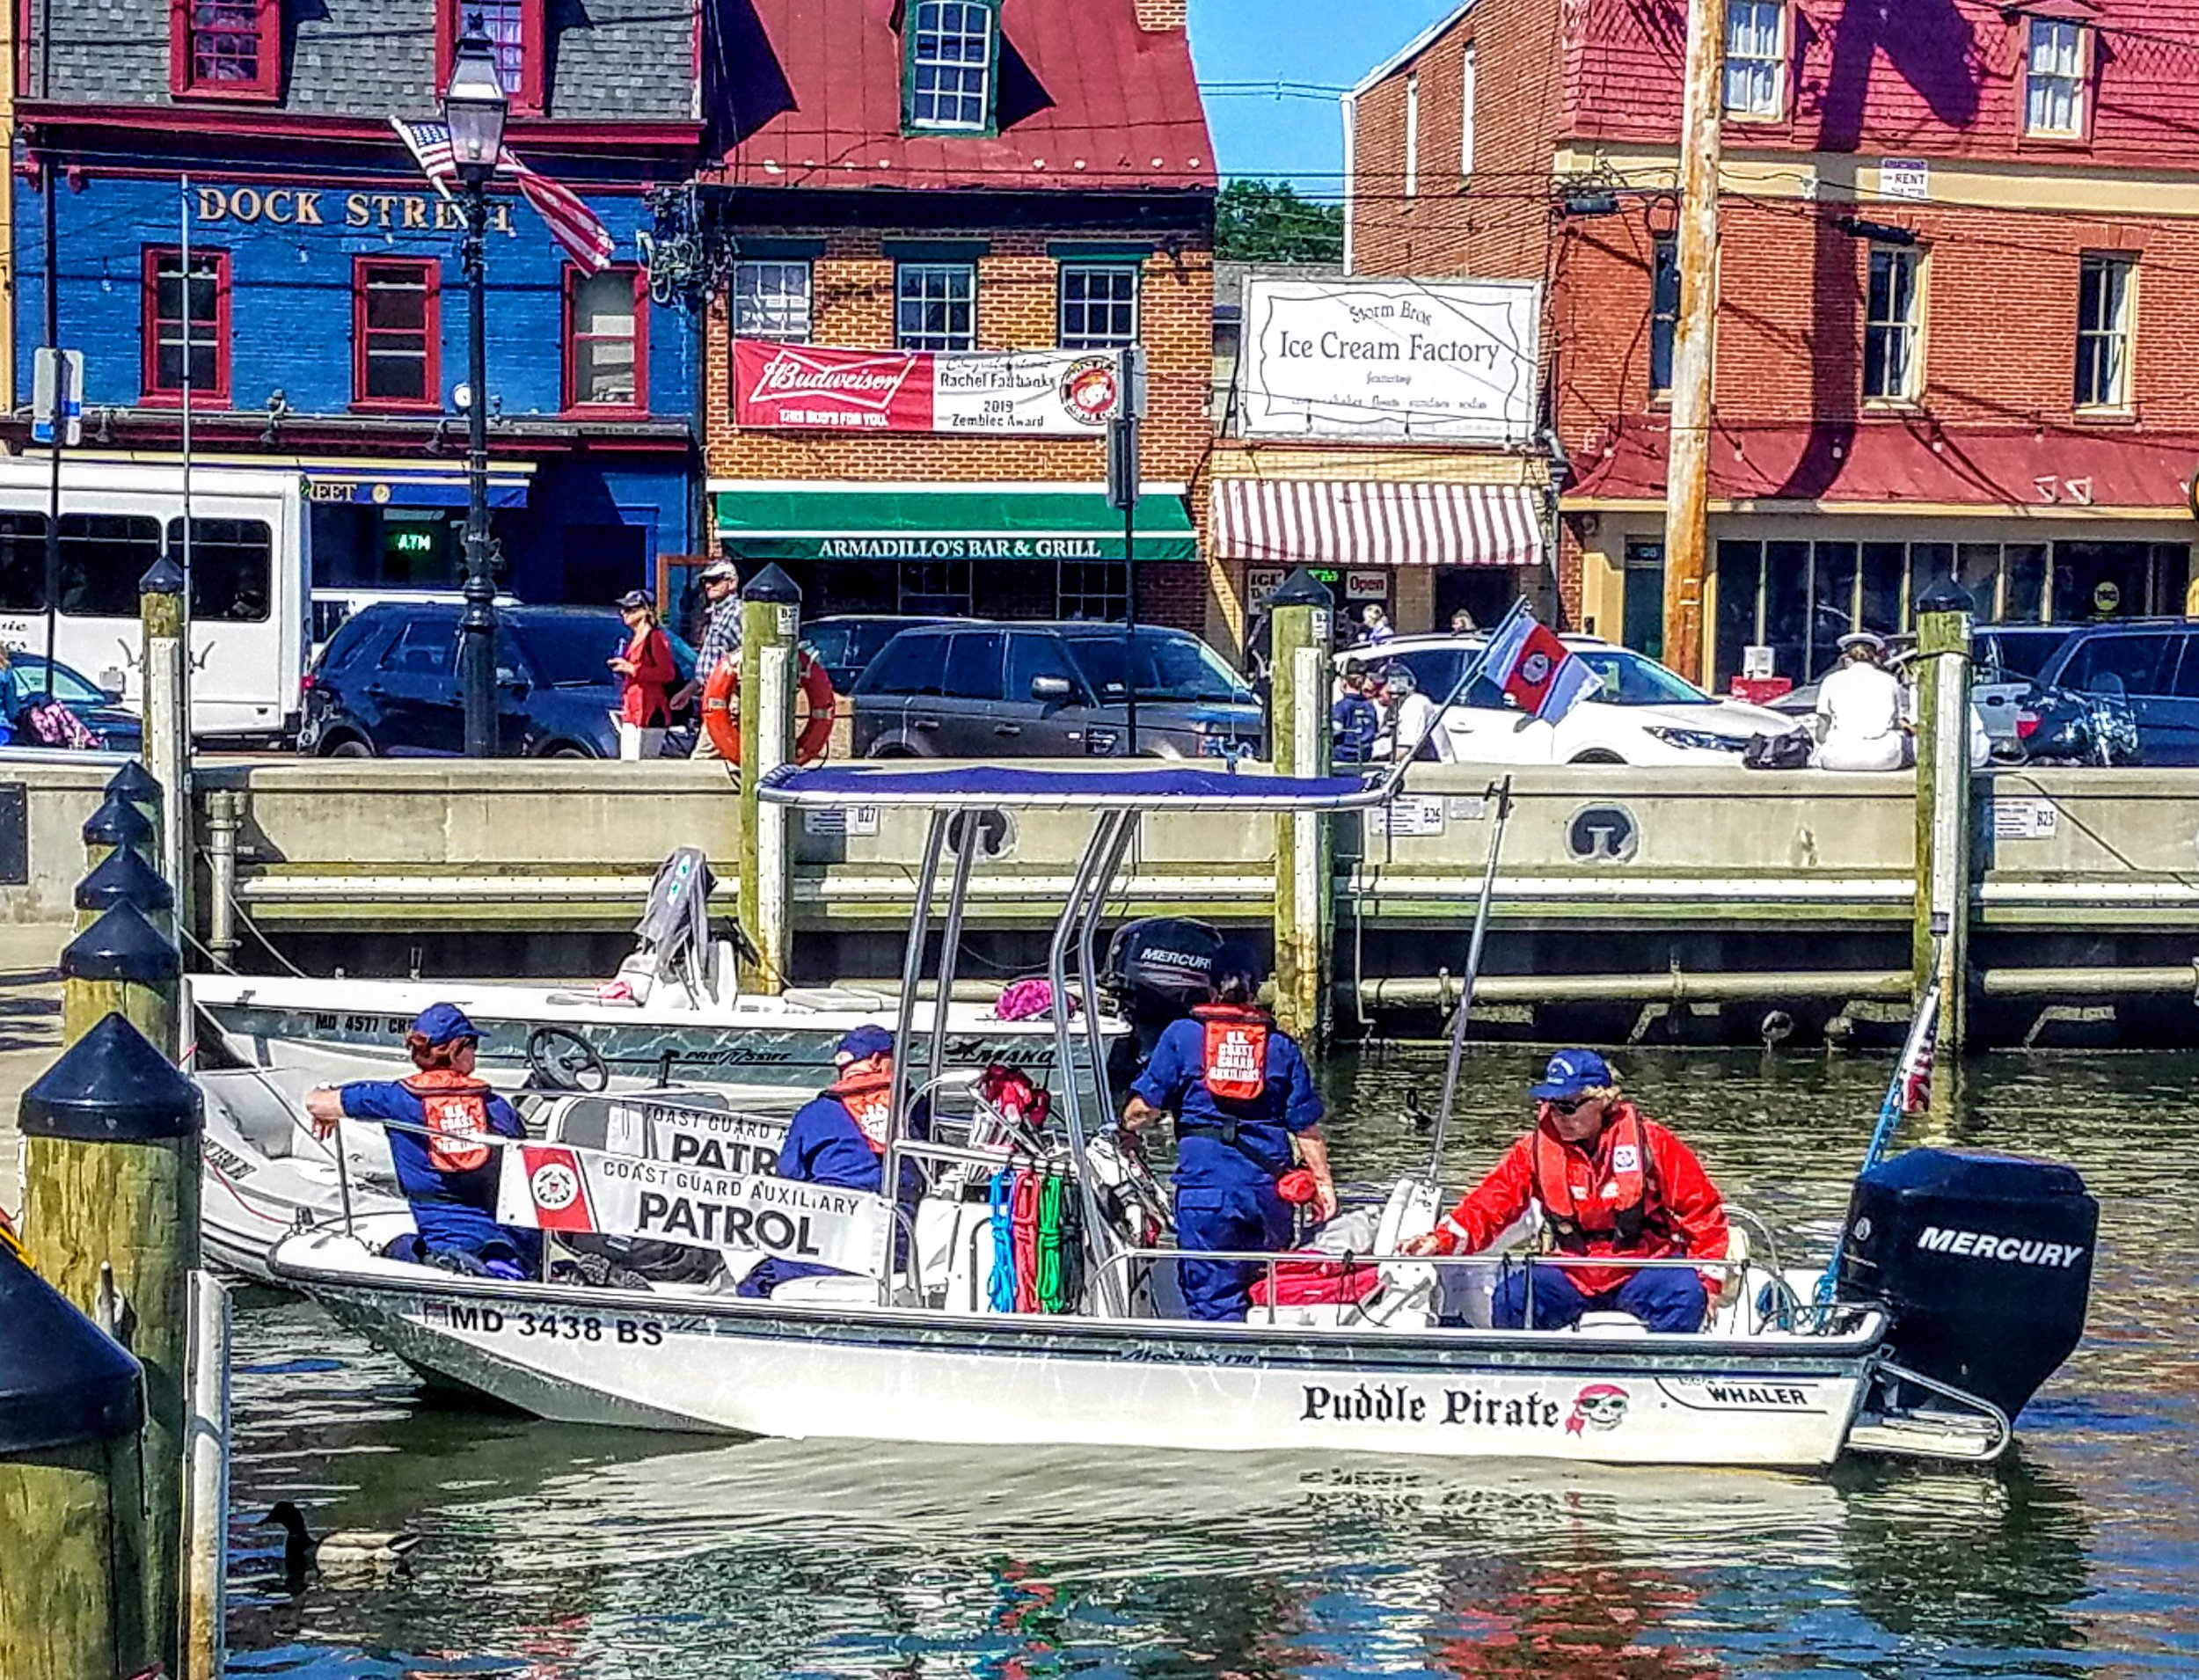 All hands on deck today as the Coast Guard Auxiliary uses their Puddle Pirate to patrol the harbor.